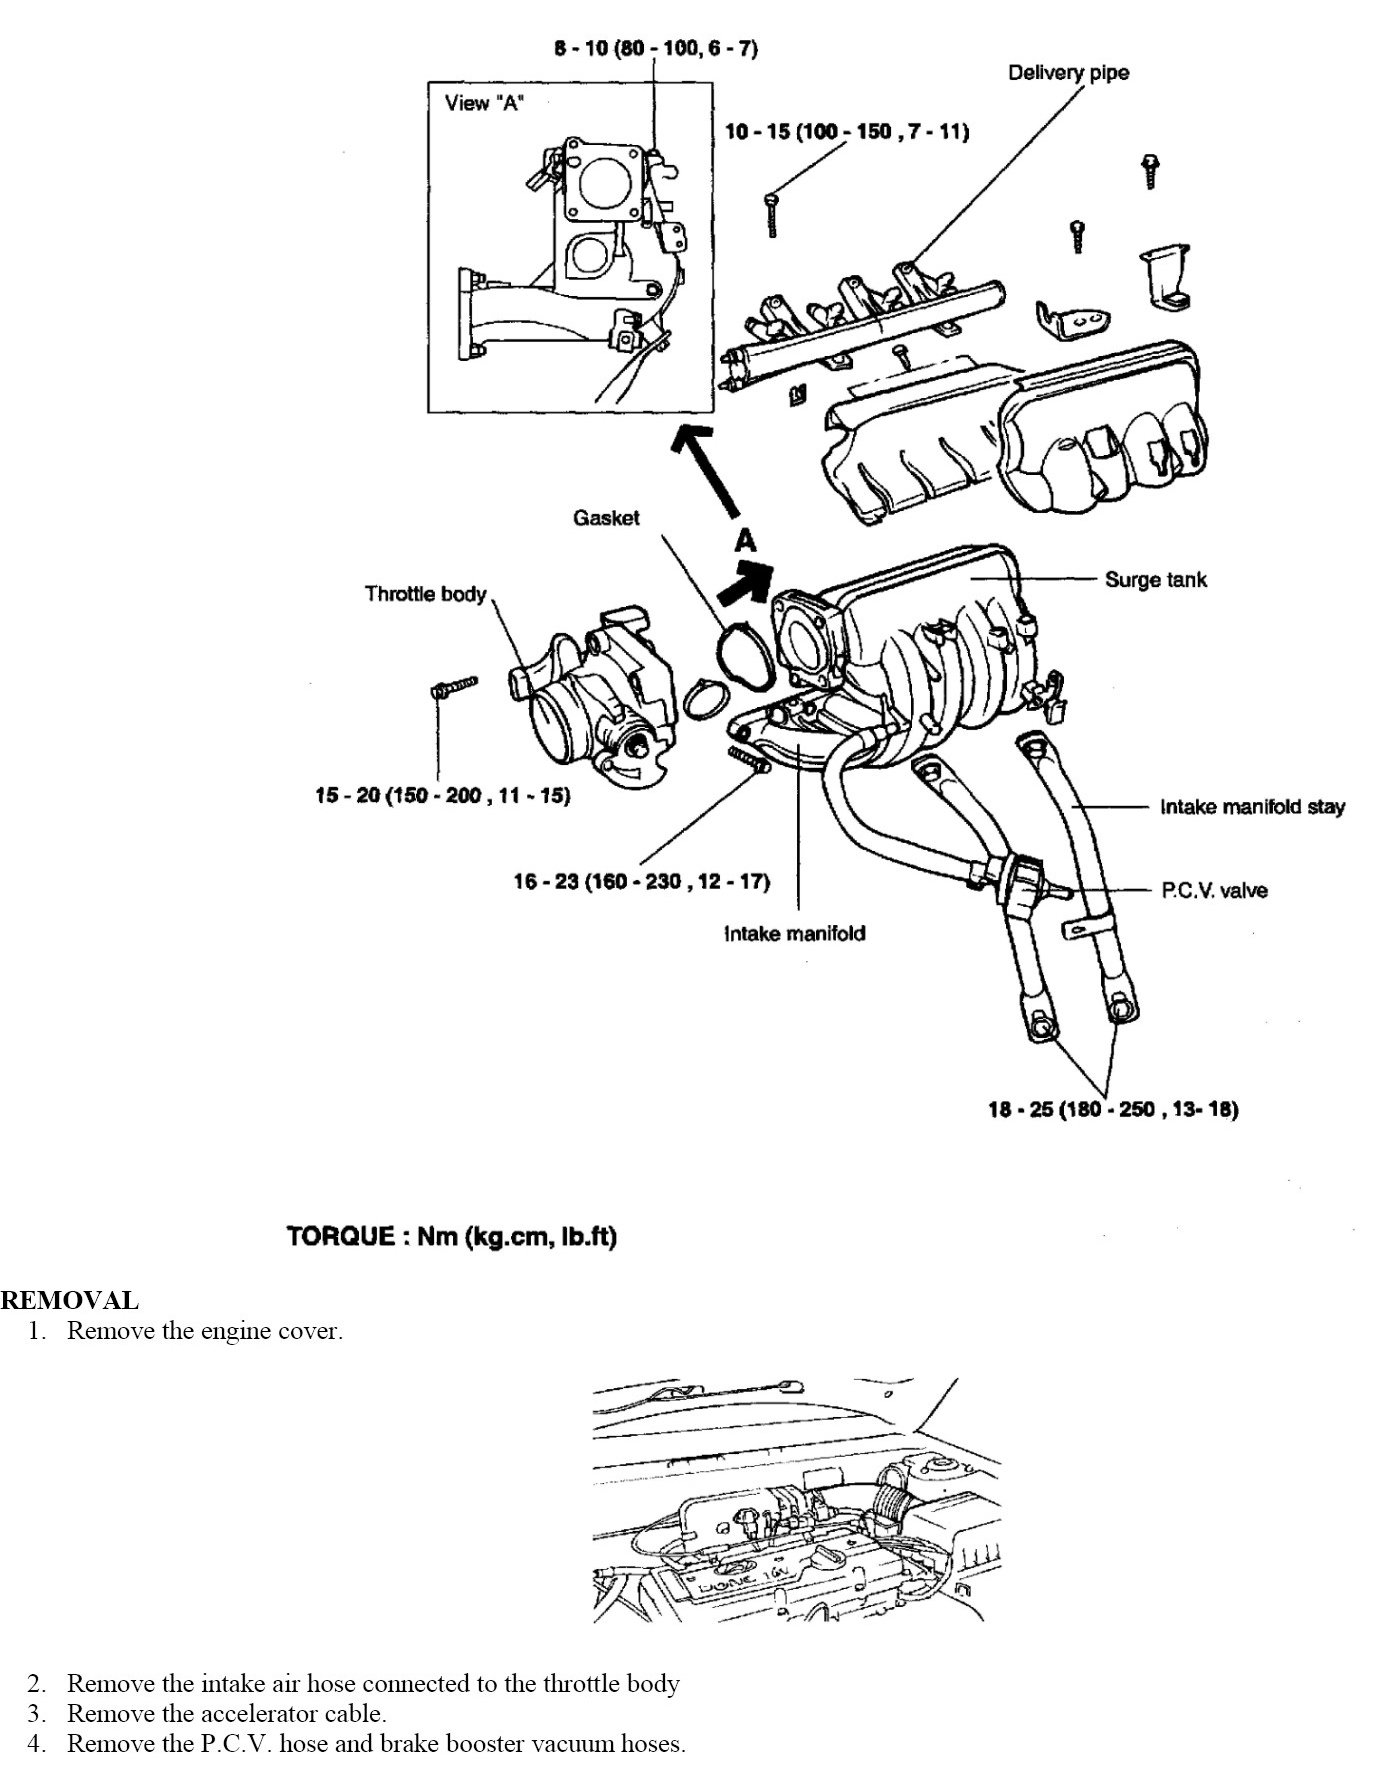 what are the steps to replacing the intake manifold gasket